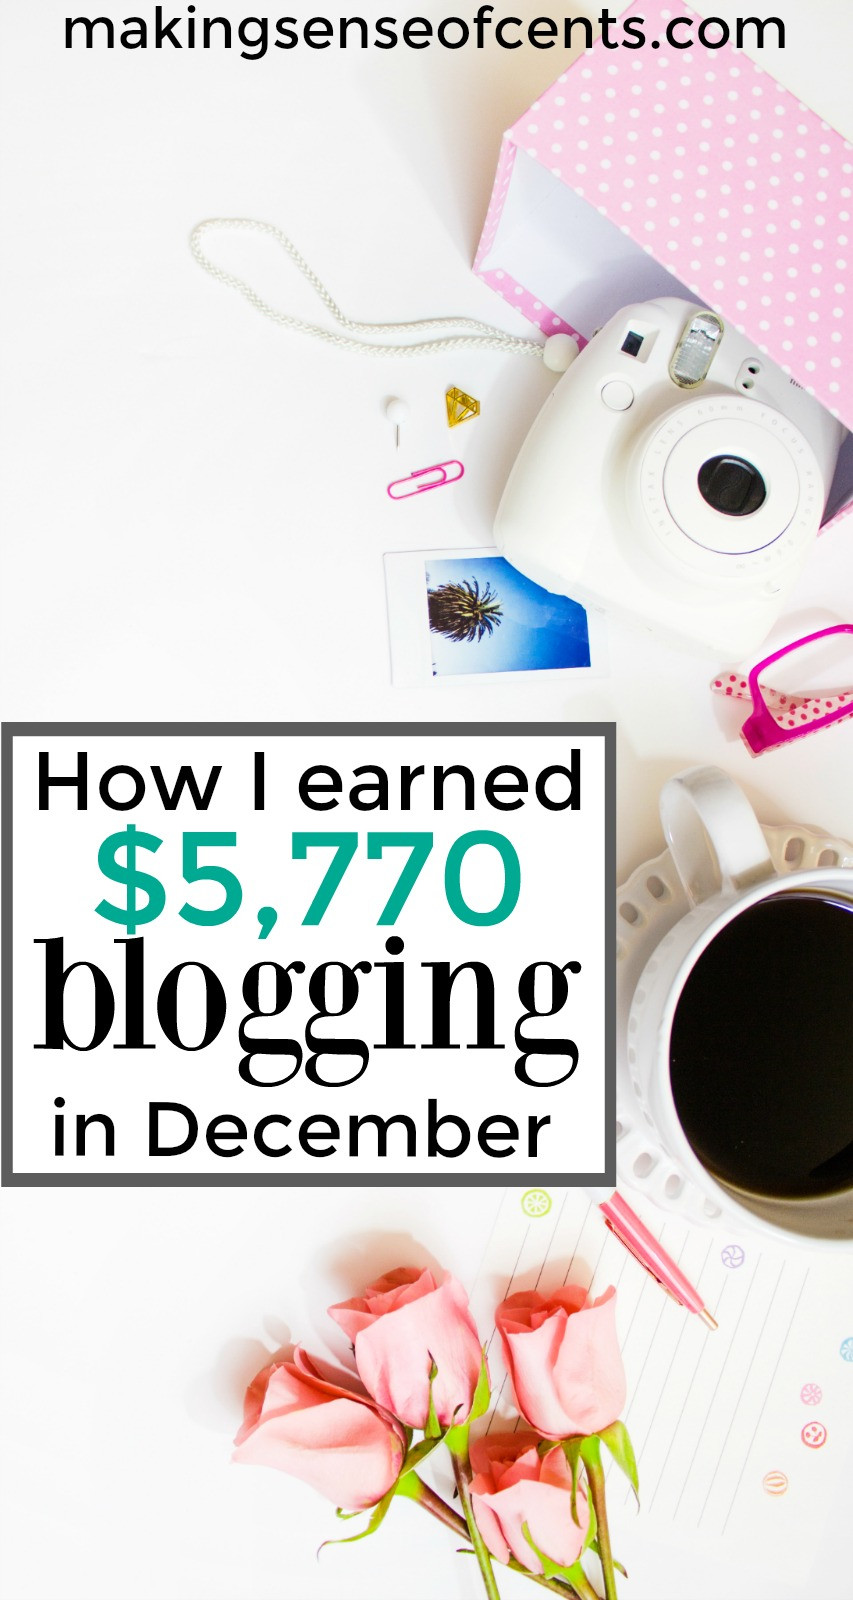 Find out how I earned $5,770 blogging in December. This is a great list!